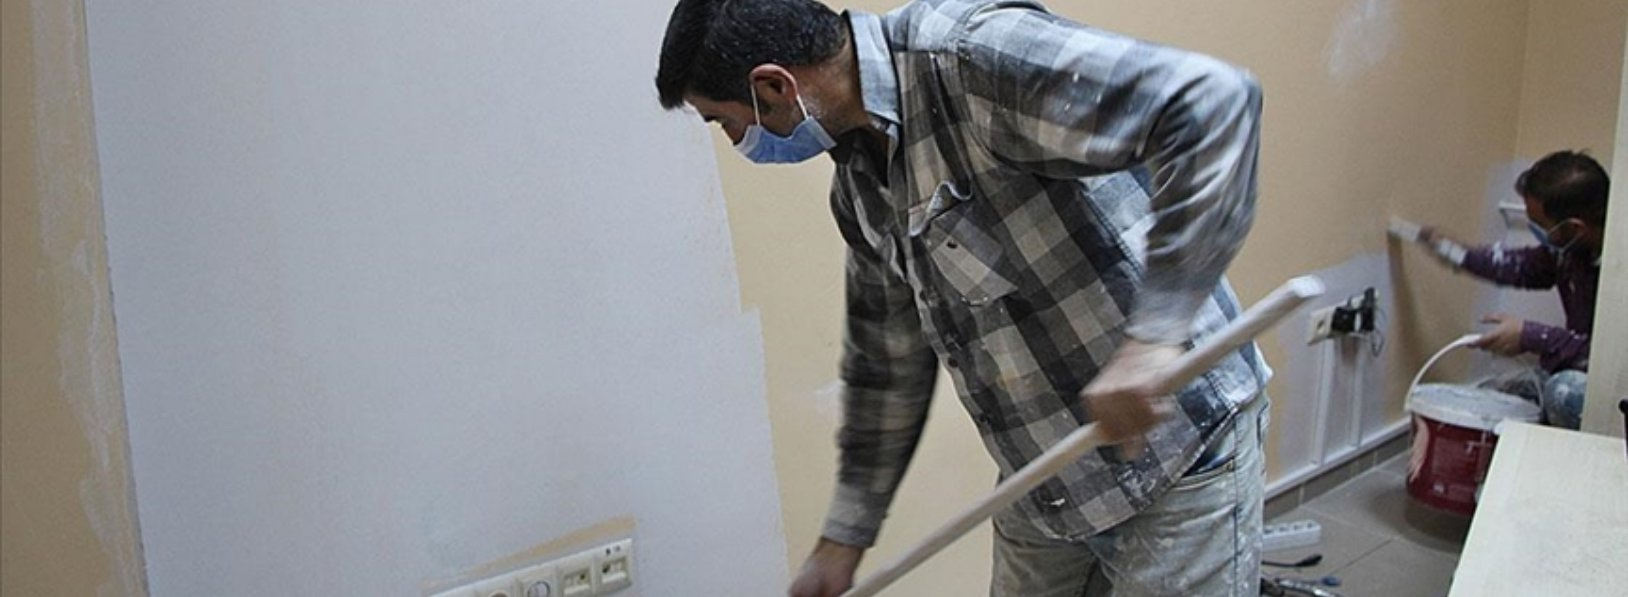 Two workers from Diyarbakır Province paint Karlıova Public Hospital for free to support healthcare workers